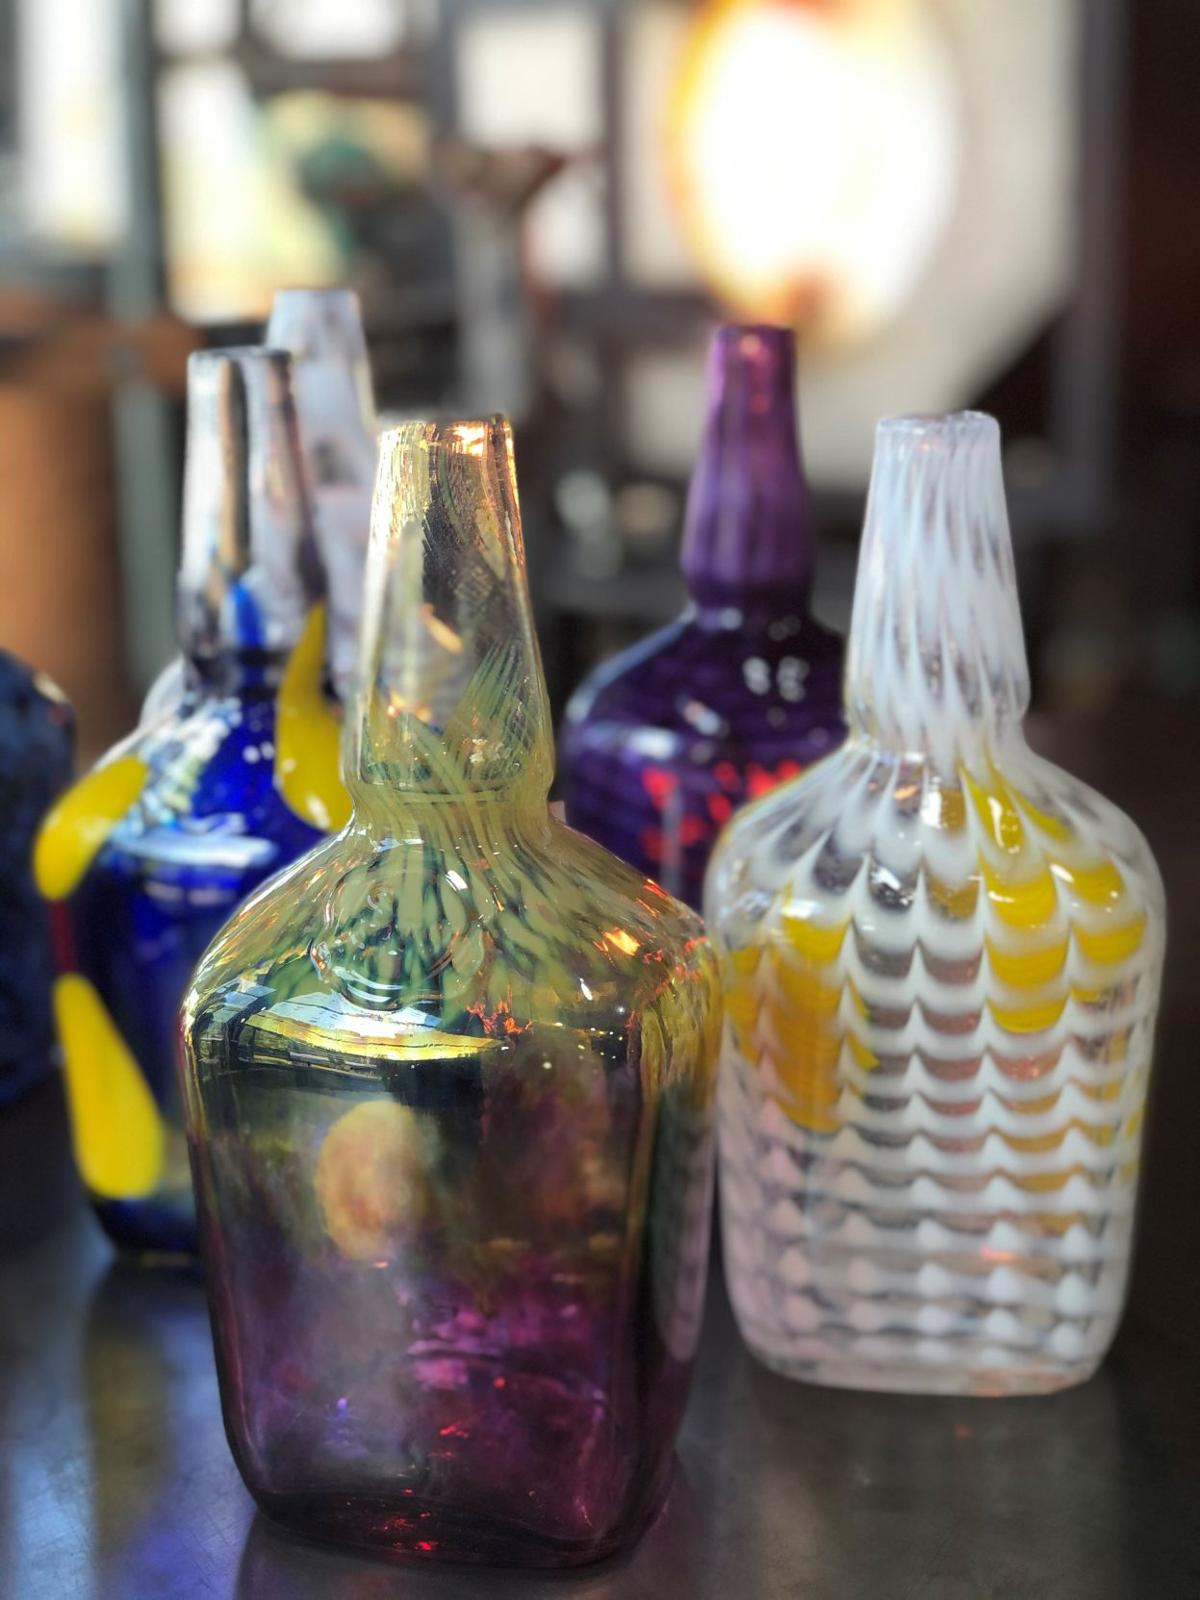 Artsy Maker's Mark bottles to be auctioned off to benefit Centre College's glassblowing program